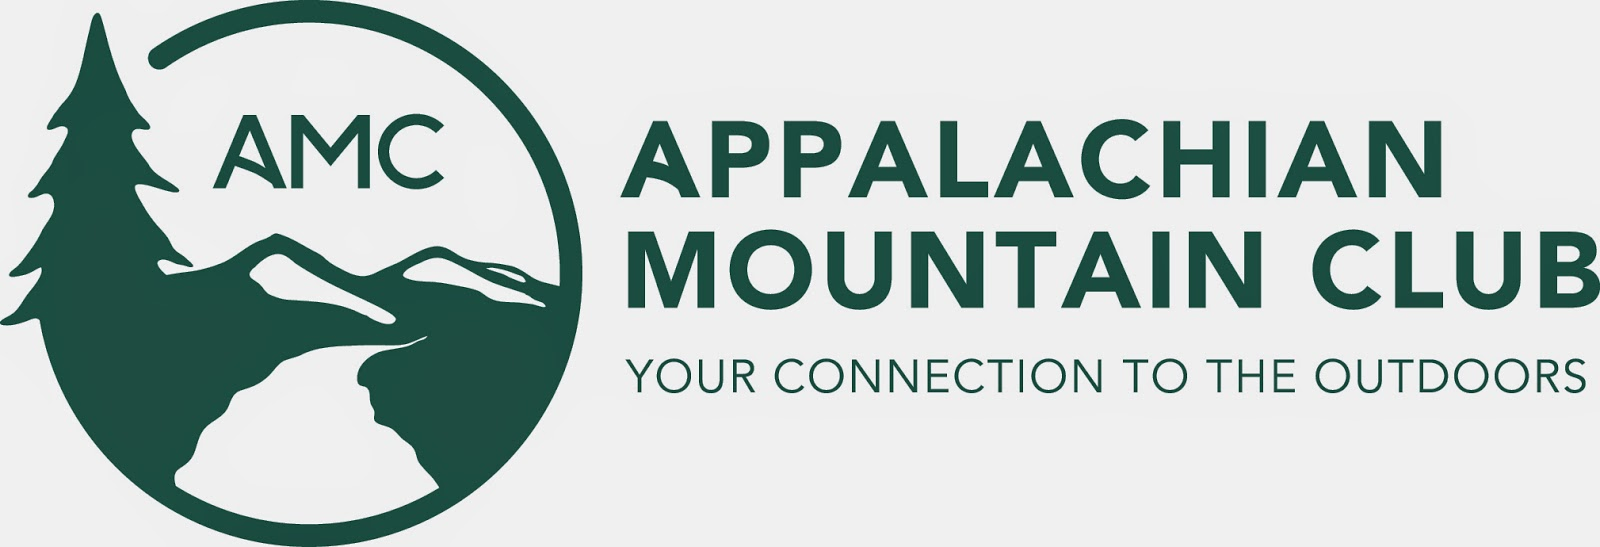 appalachian mountain club last filed their form 990 for their 2018 tax year. Appalachian Mountain Club Amc Family Outings Thayer Memorial Library